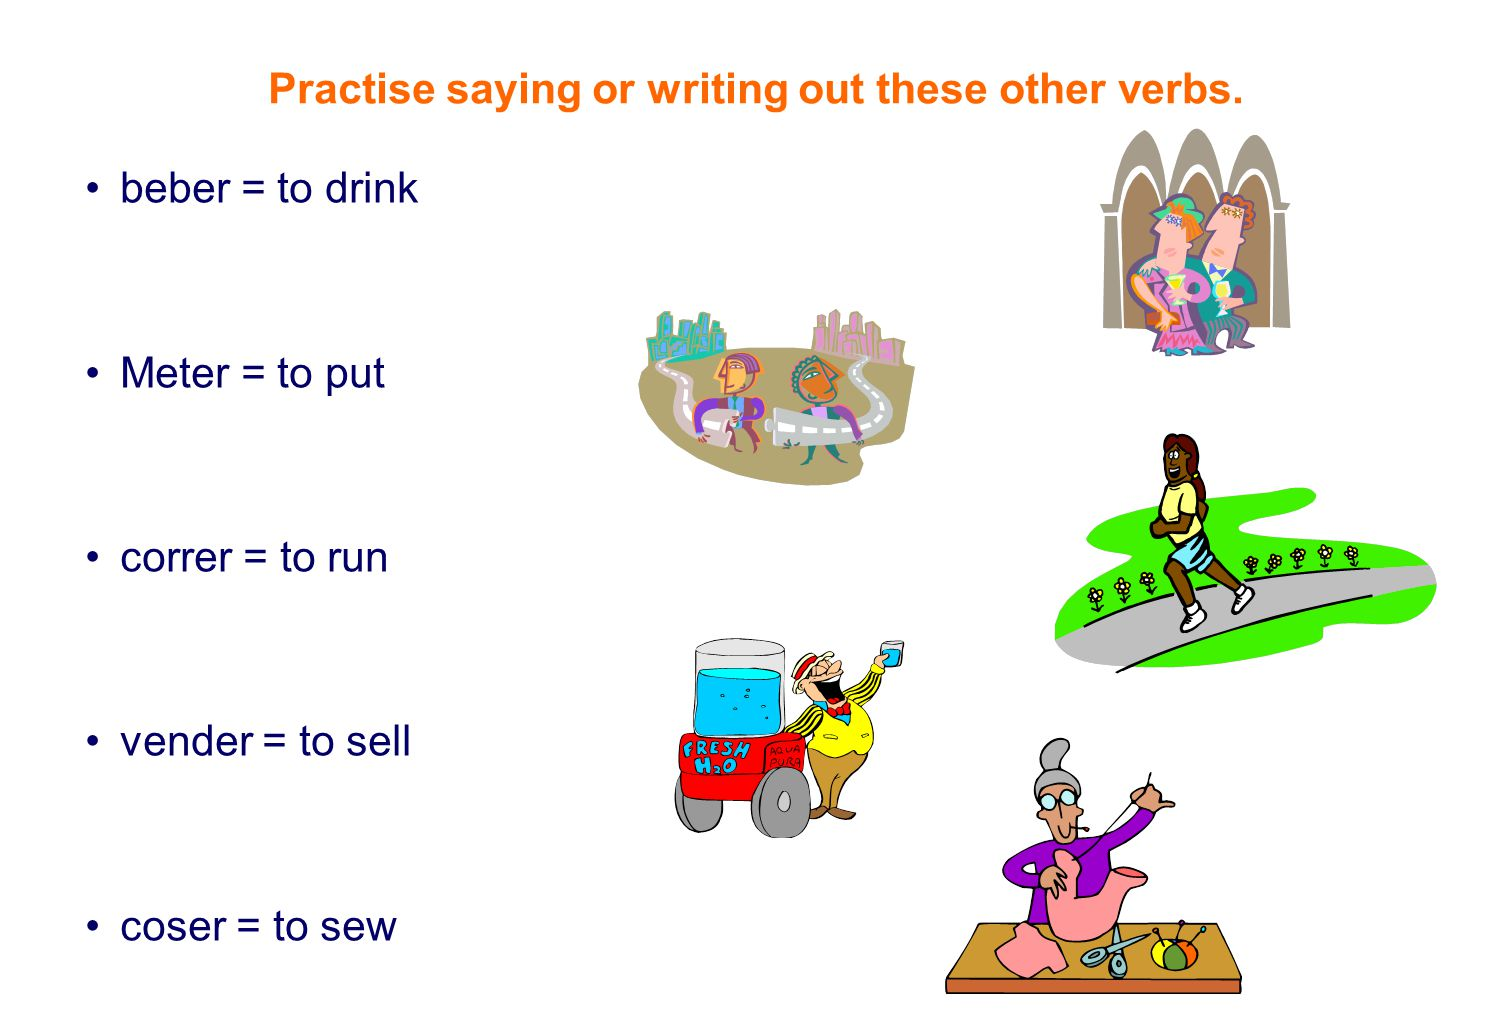 Practise saying or writing out these other verbs.